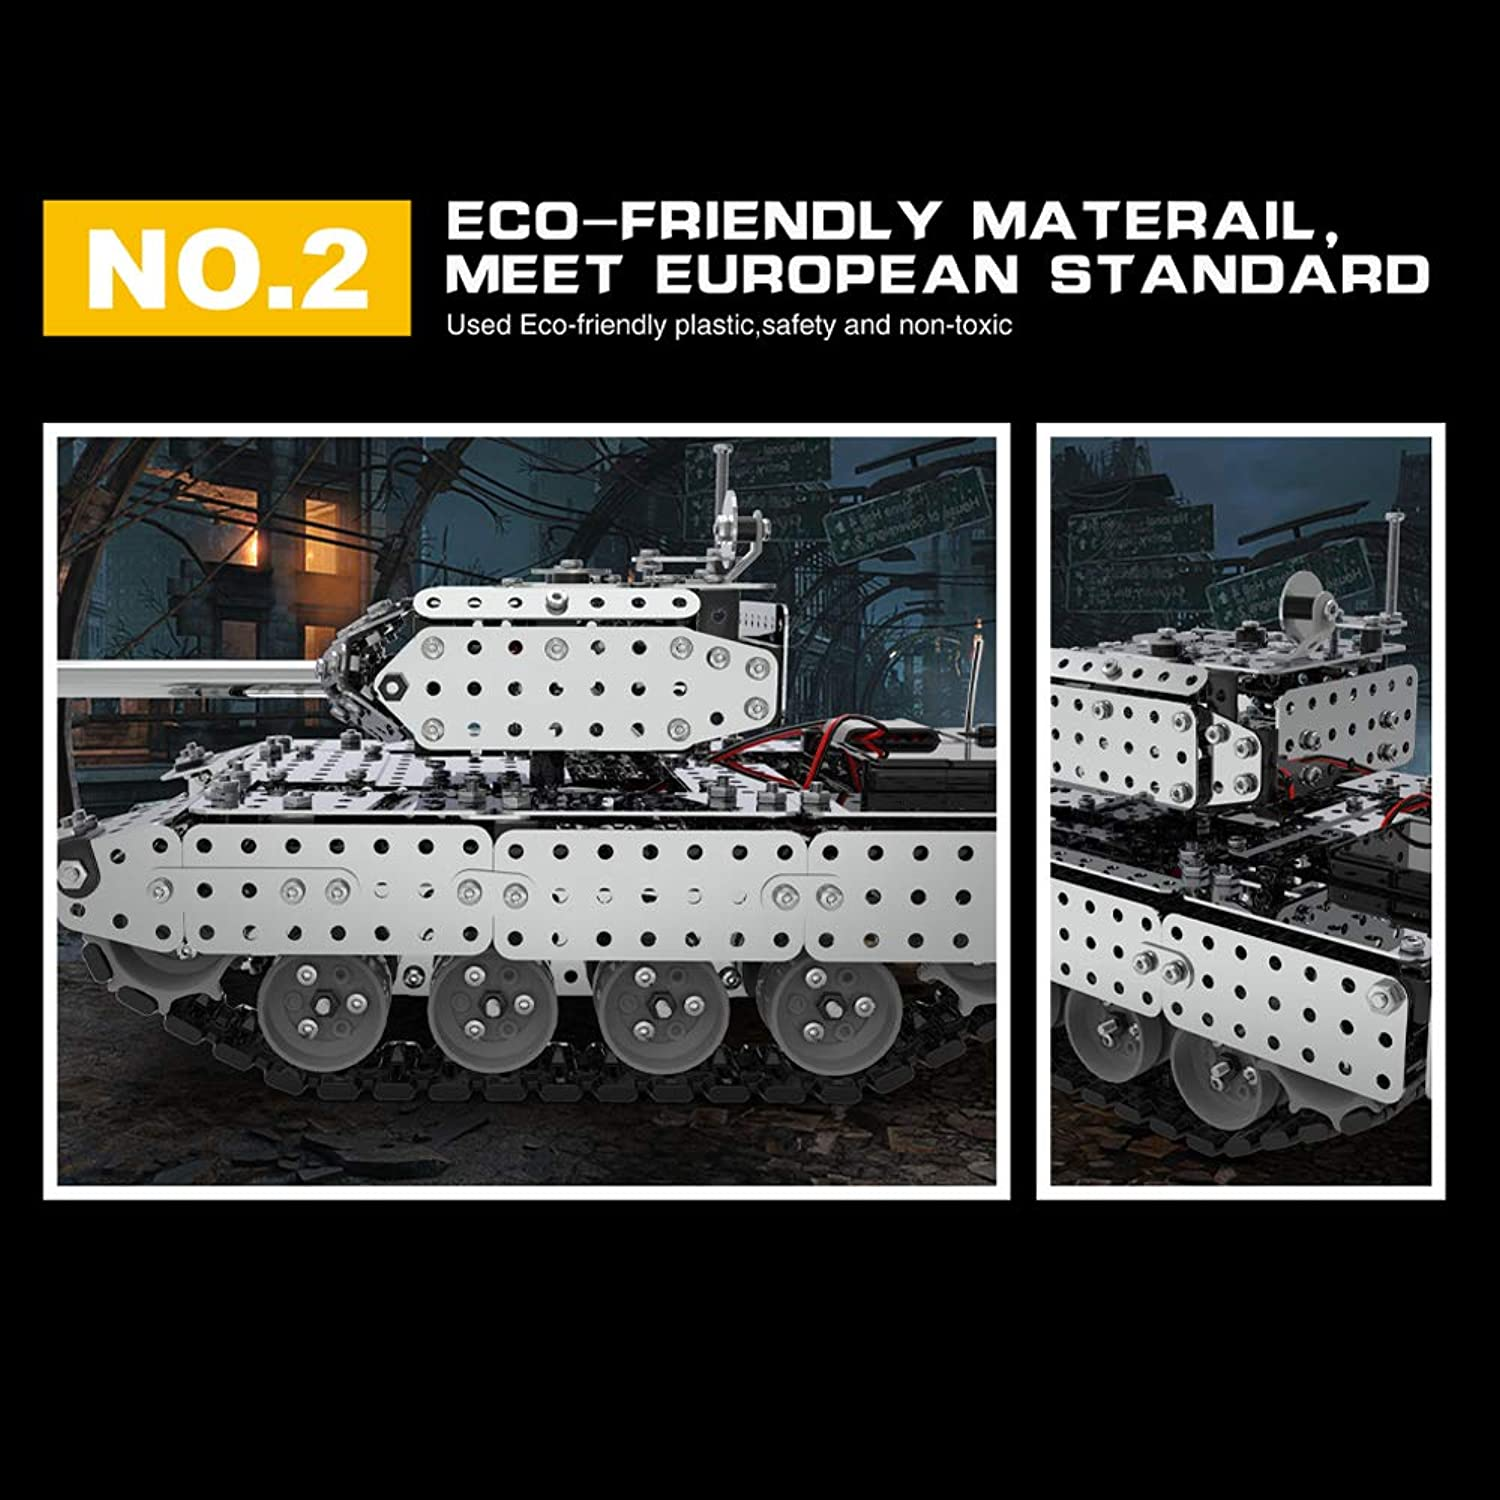 GoolRC RC Battle Tank Car Building Blocks Educational Toys Stainless Steel Remote Control RC Toy Gift for Kids Boys 952pcs